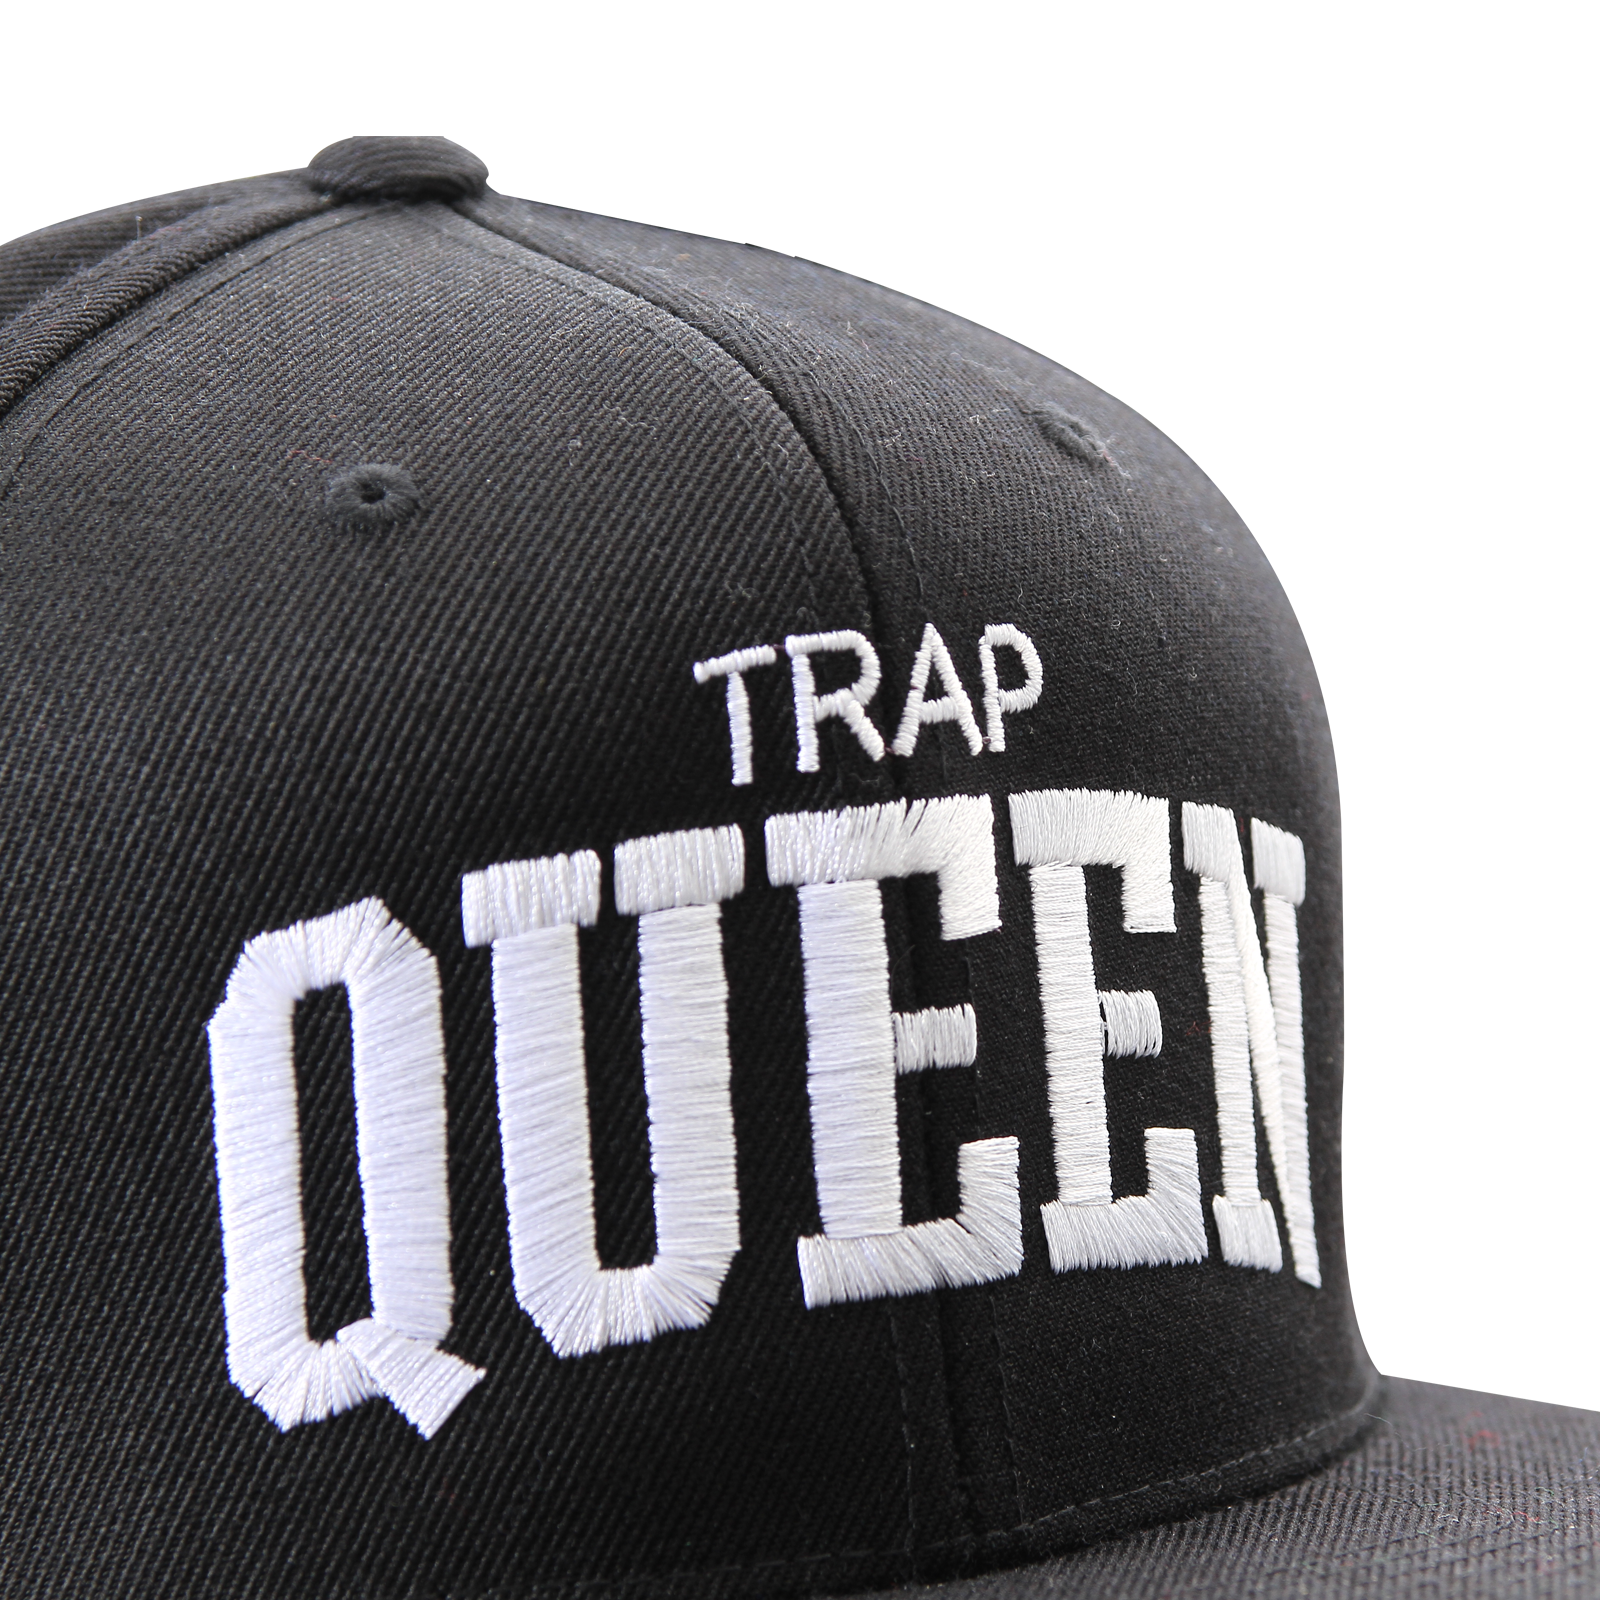 Trap Queen Black Snapback